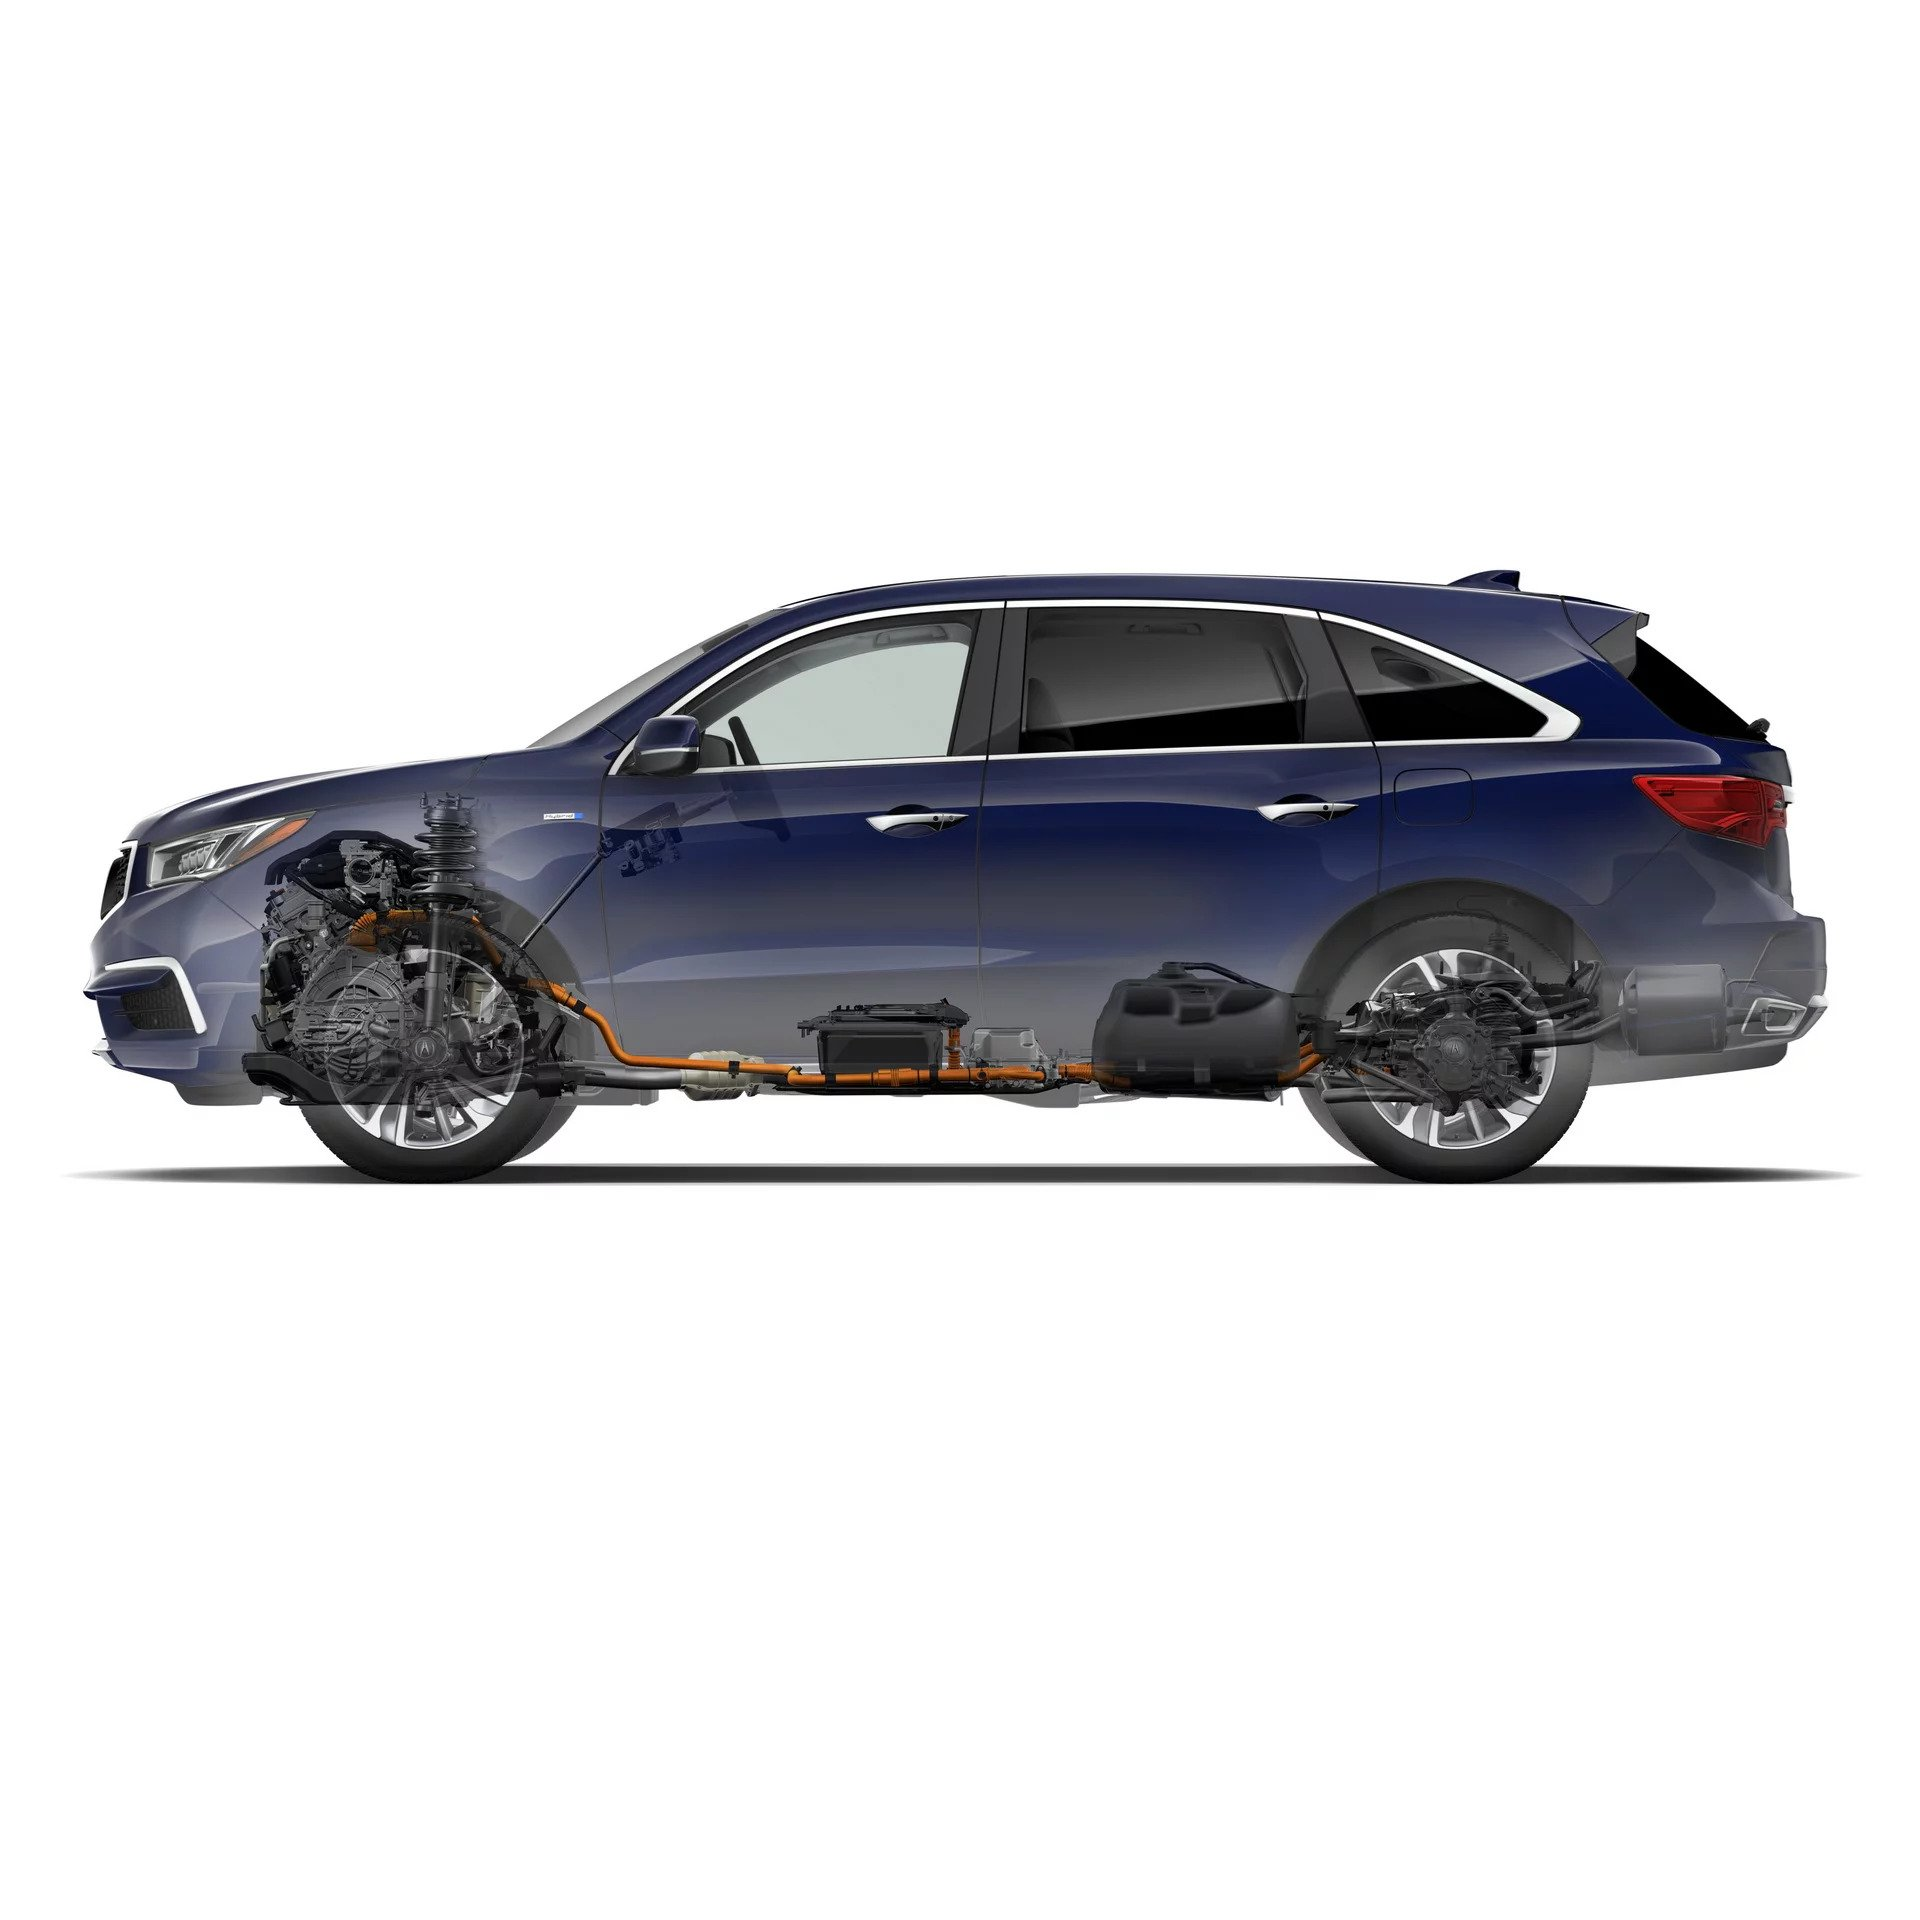 2019 Acura MDX Sport Hybrid Priced At $52,800